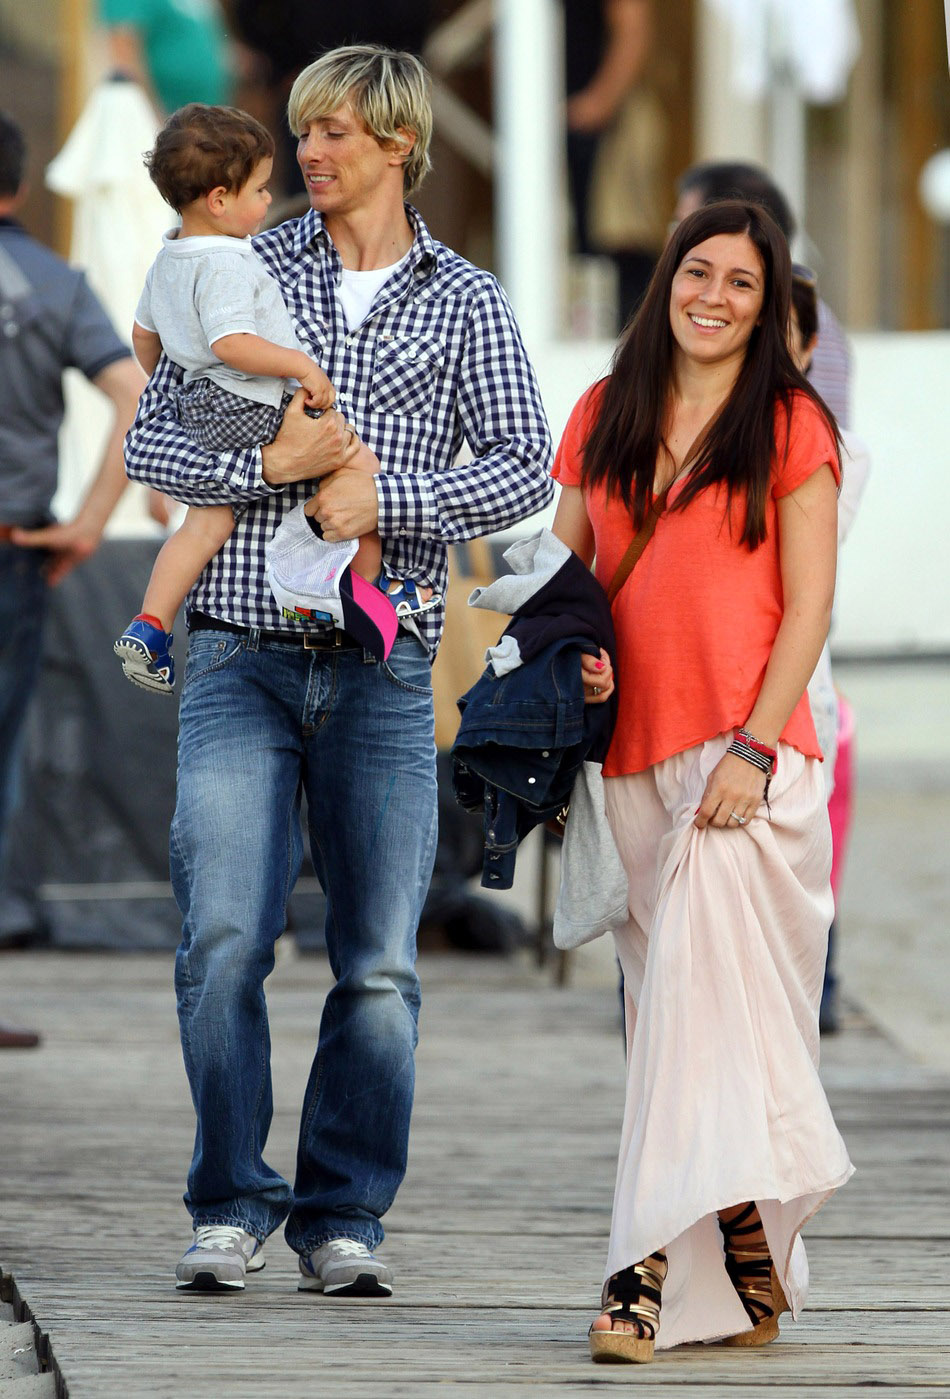 Football Stars: Fernando Torres With Kids And Wife Olalla